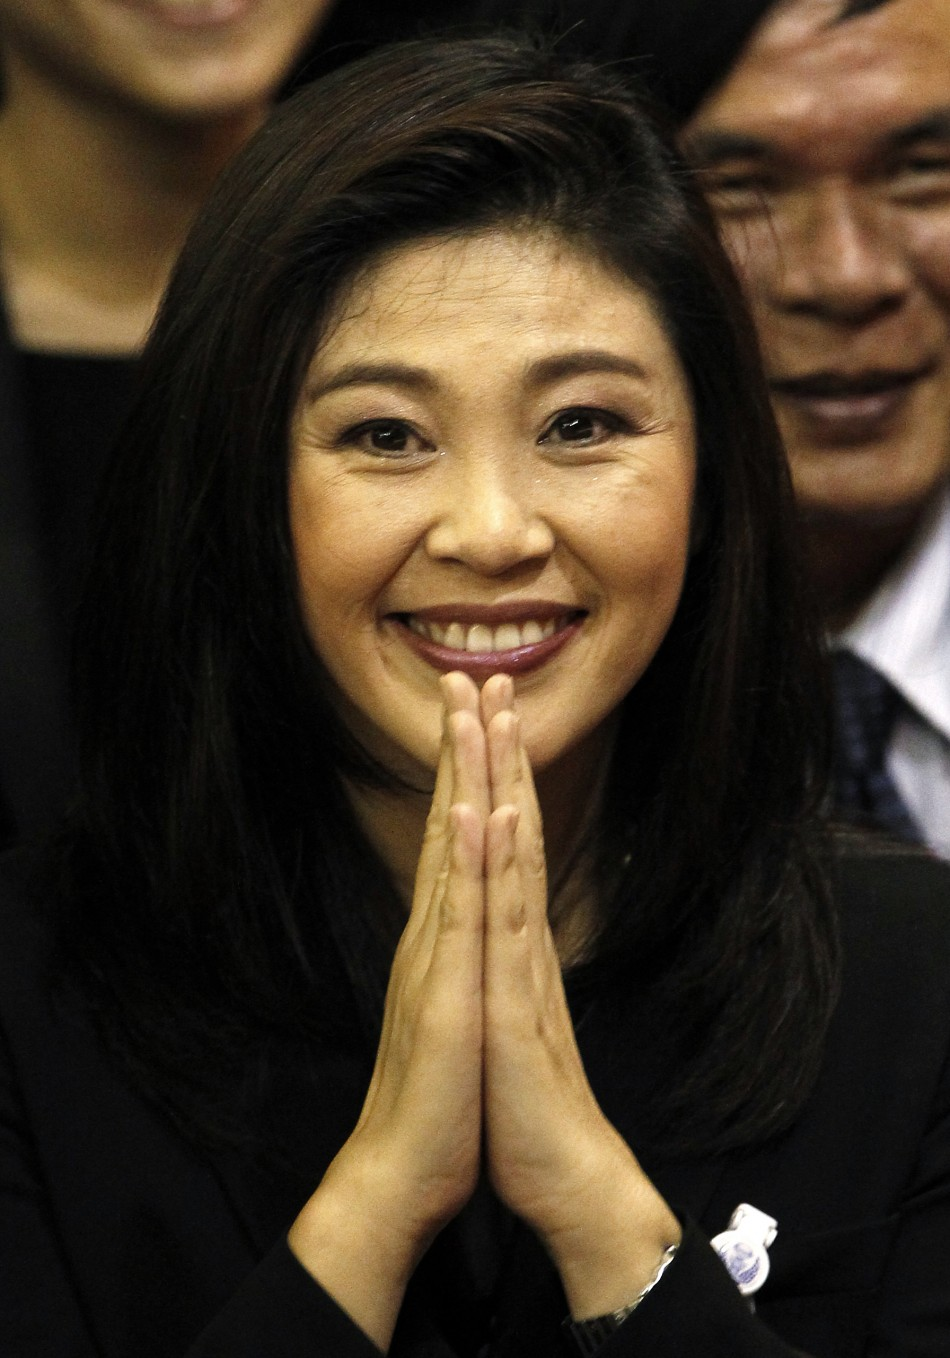 Thailands new PM Shinawatra of the Puea Thai Party gestures to members of parliament moments after being elected as the countrys 28th prime minister in Bangkok